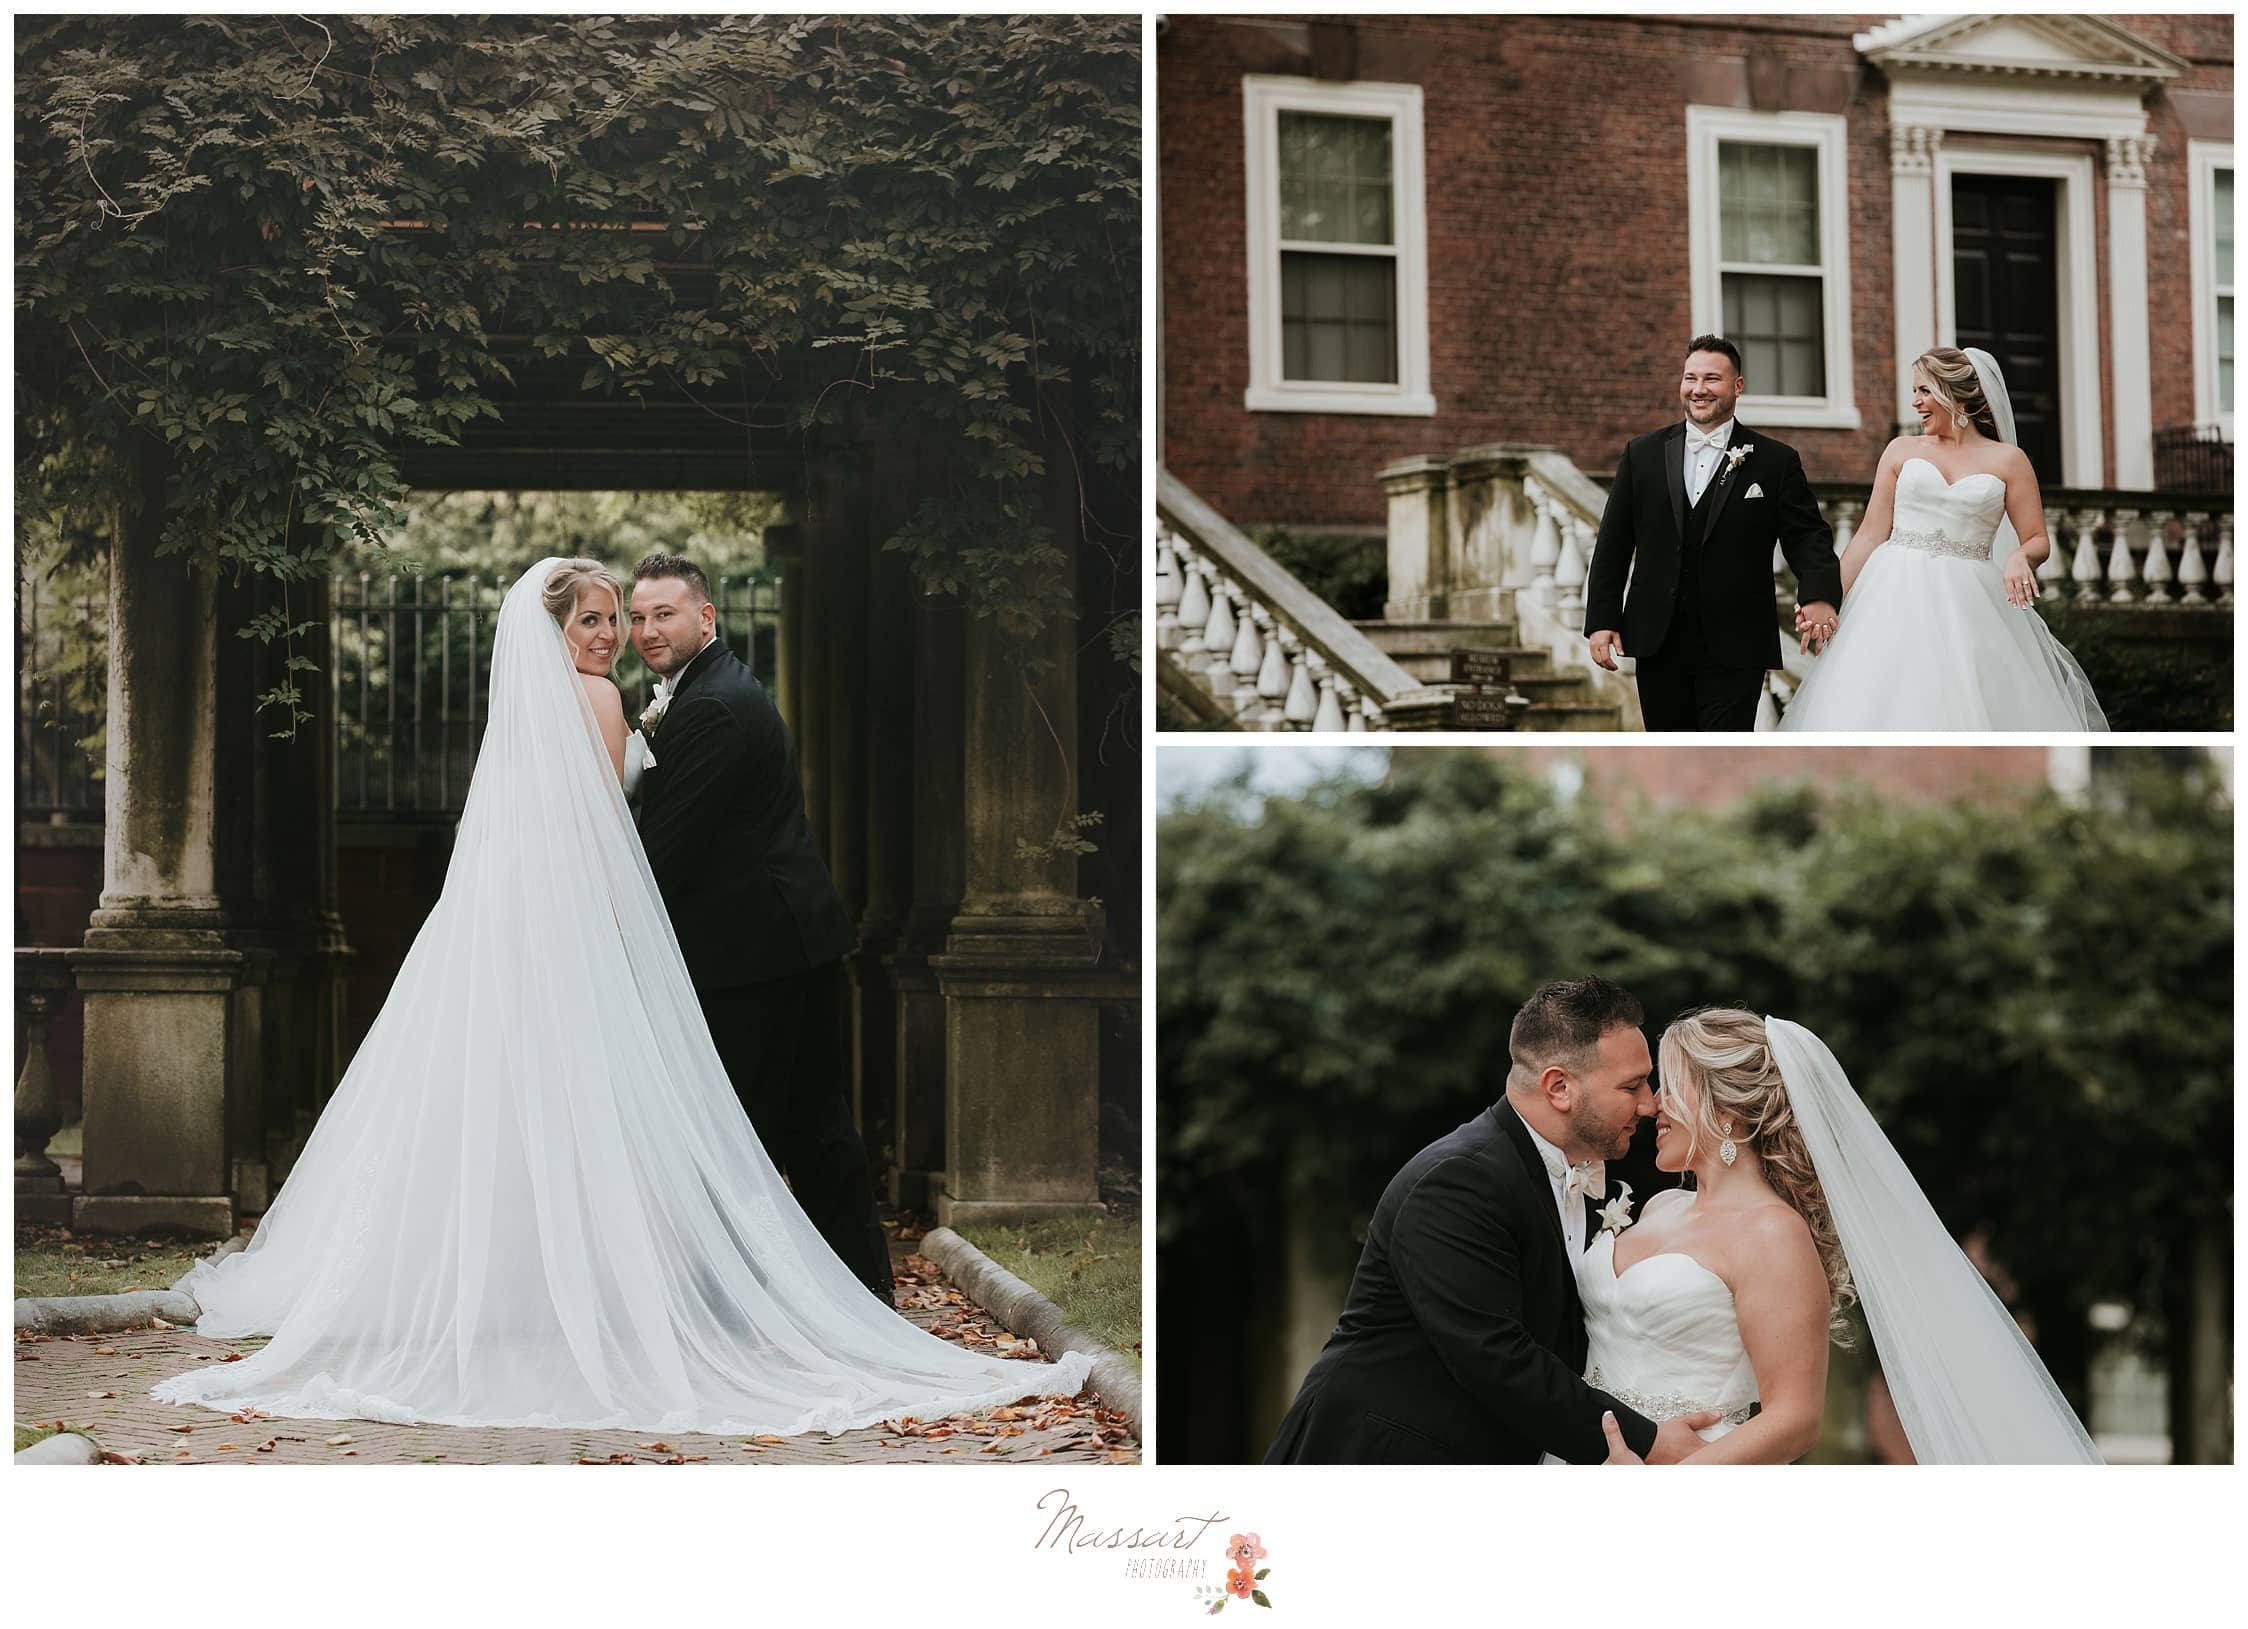 Formal outdoor portraits of the newlyweds in Providence photographed by Massart Photography of Warwick, Rhode Island